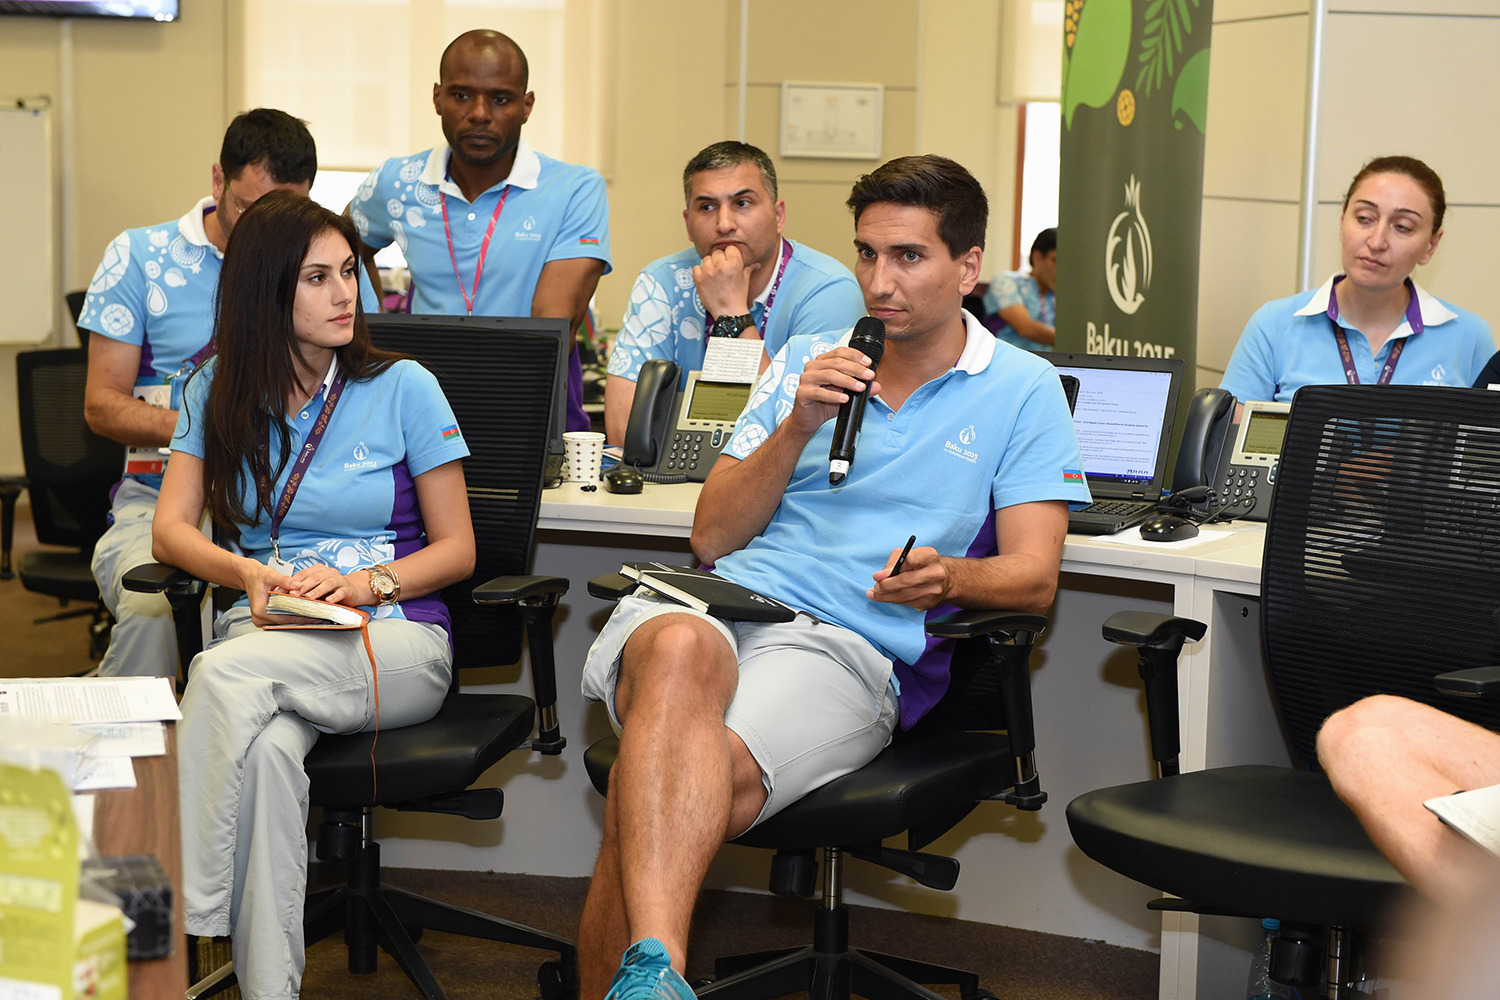 JTA's Christian Winkler updates the Games Operations Support Centre communications team during the daily briefing